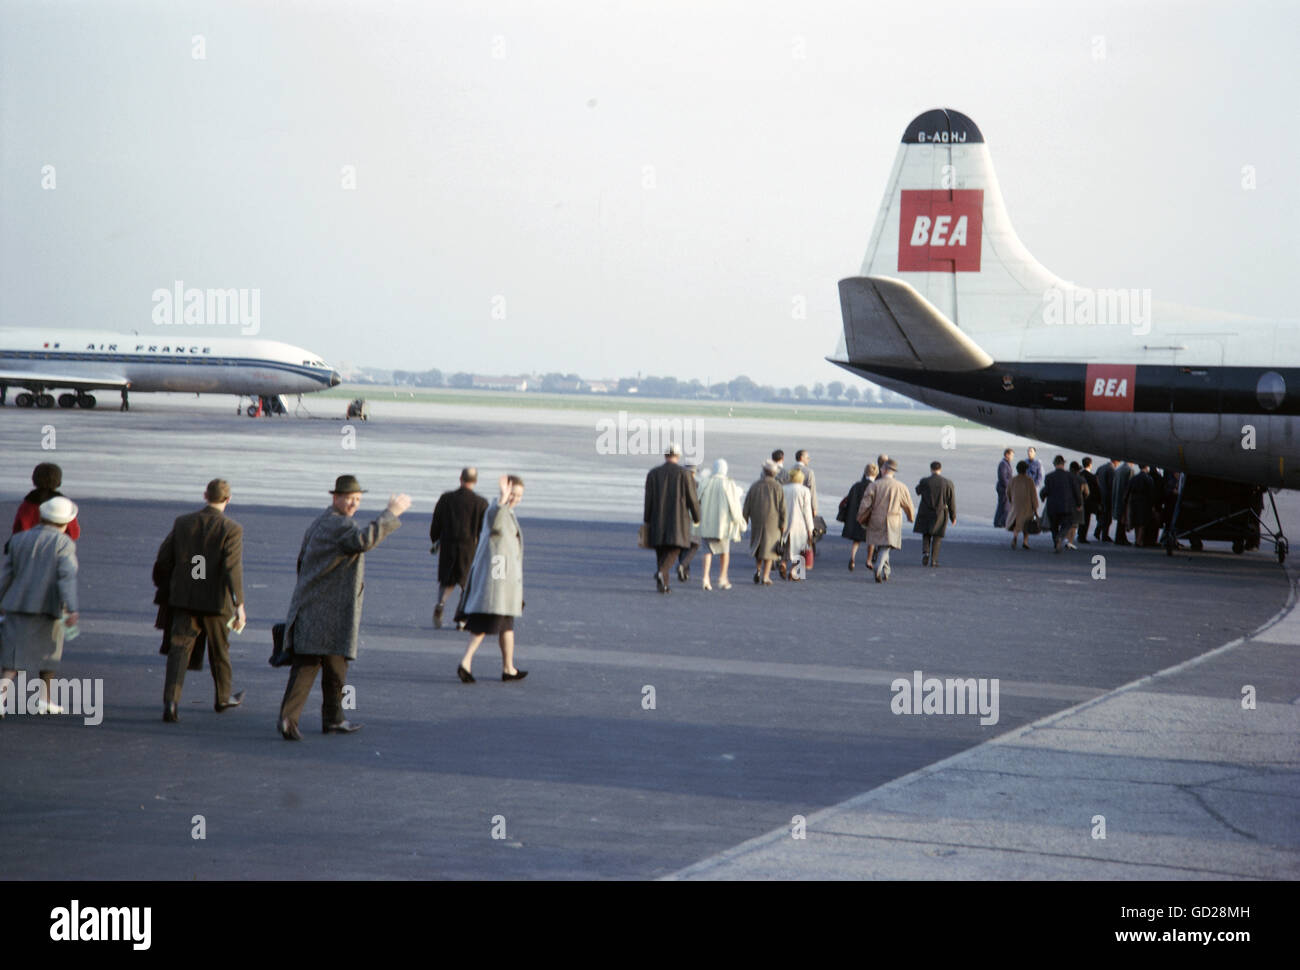 transport/transportation, aviation, airport, Munich Riem, passengers boarding a plane of British European Airlines, - Stock Image